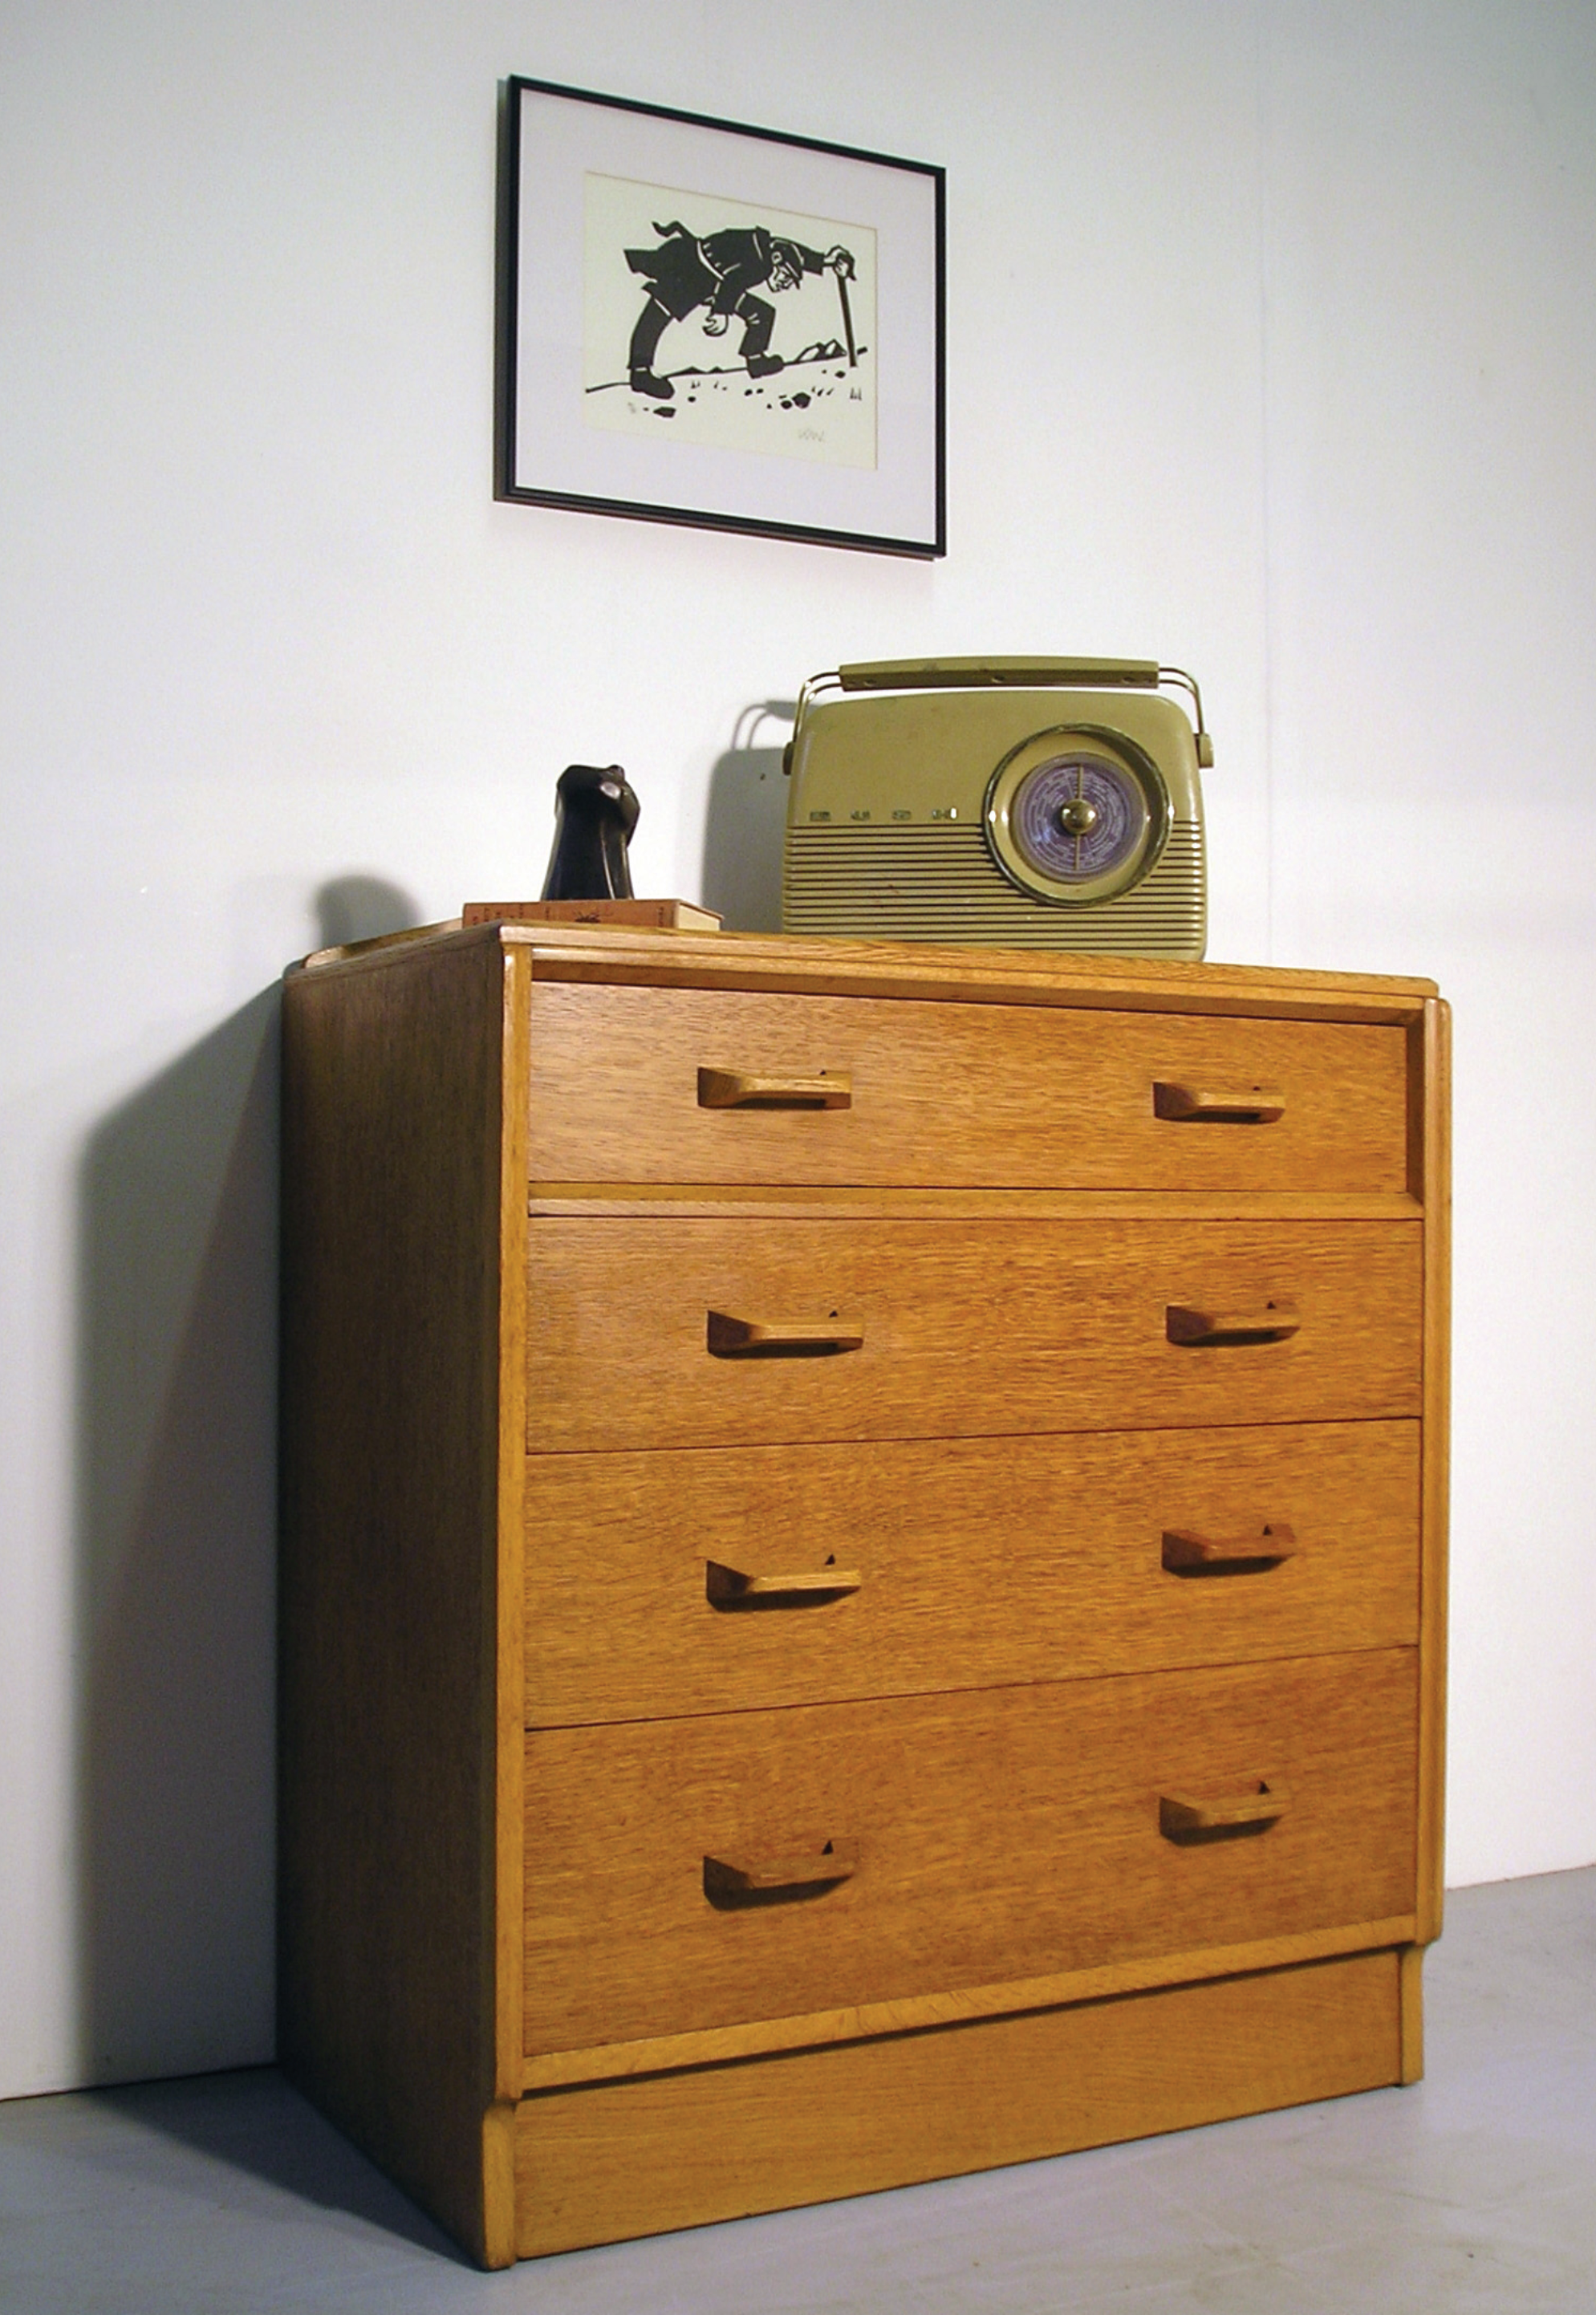 LEFT: This chest of drawers in golden oak from the Brandon range has the Gomme gold stamp. It was designed in 1954 by Victor Bramwell Wilkins